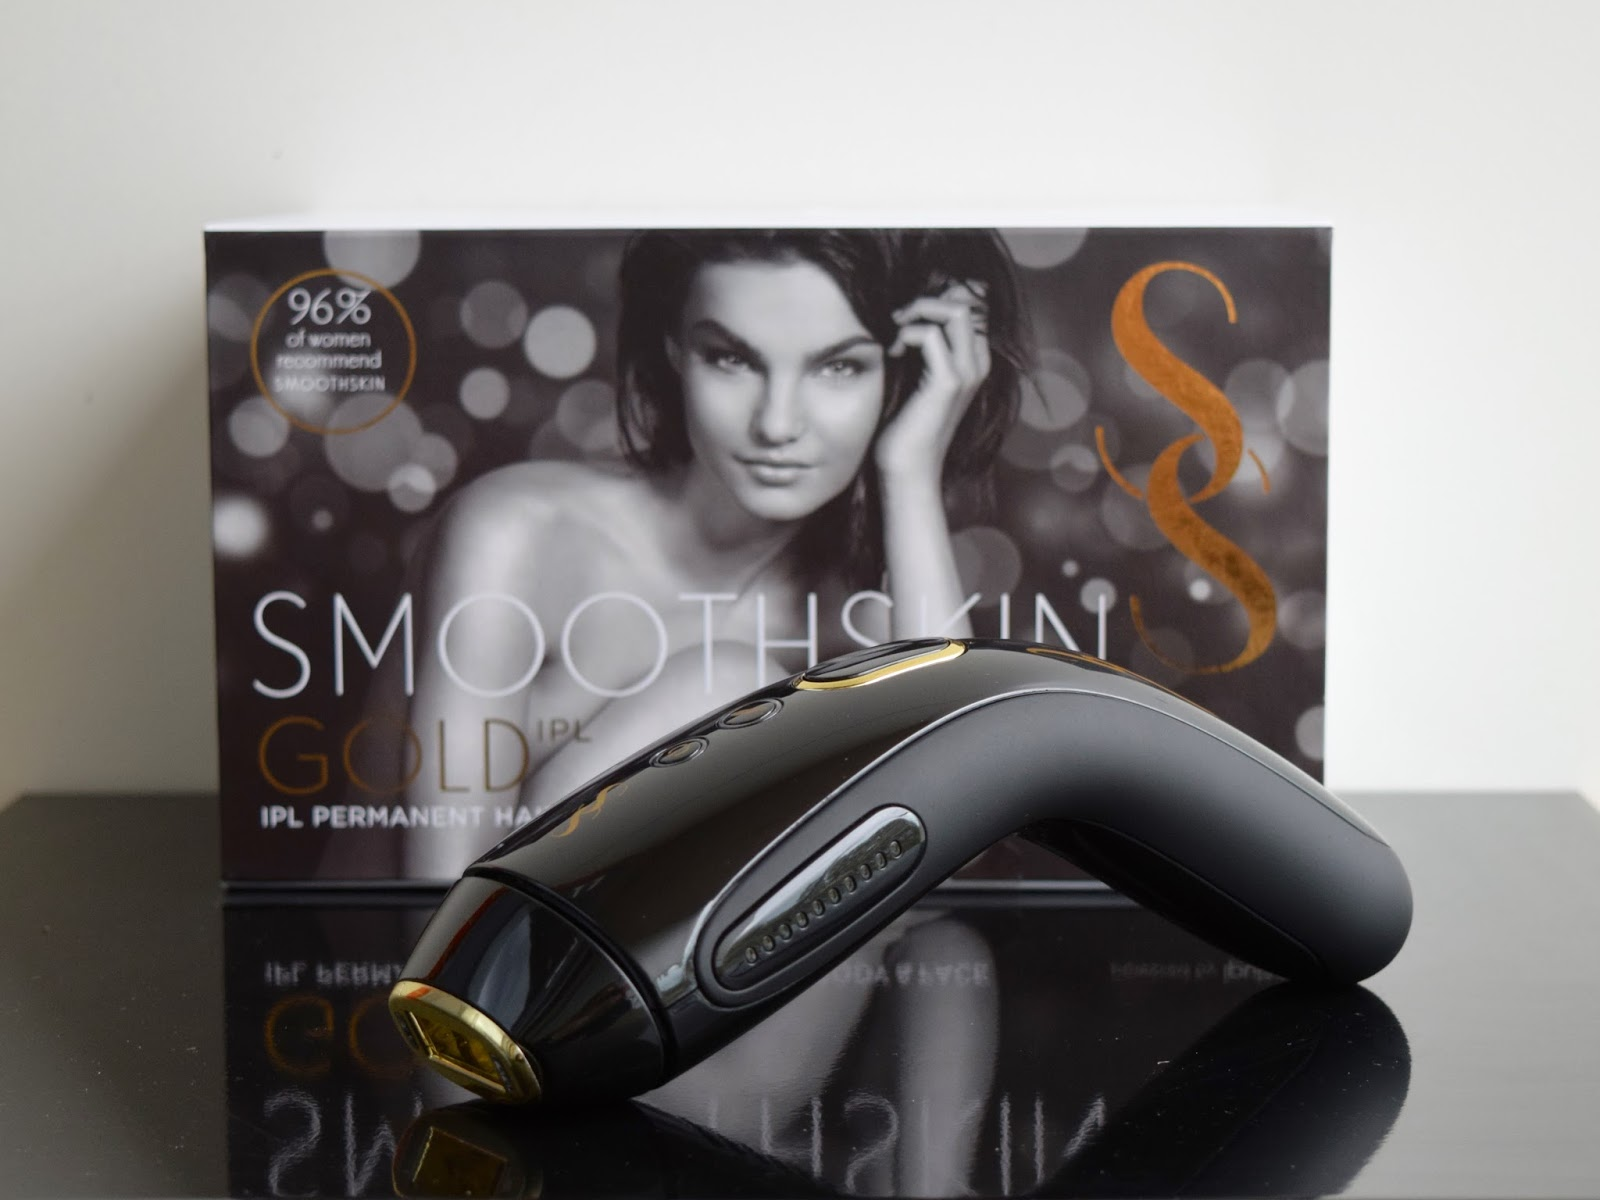 SmoothSkin Gold IPL Overview